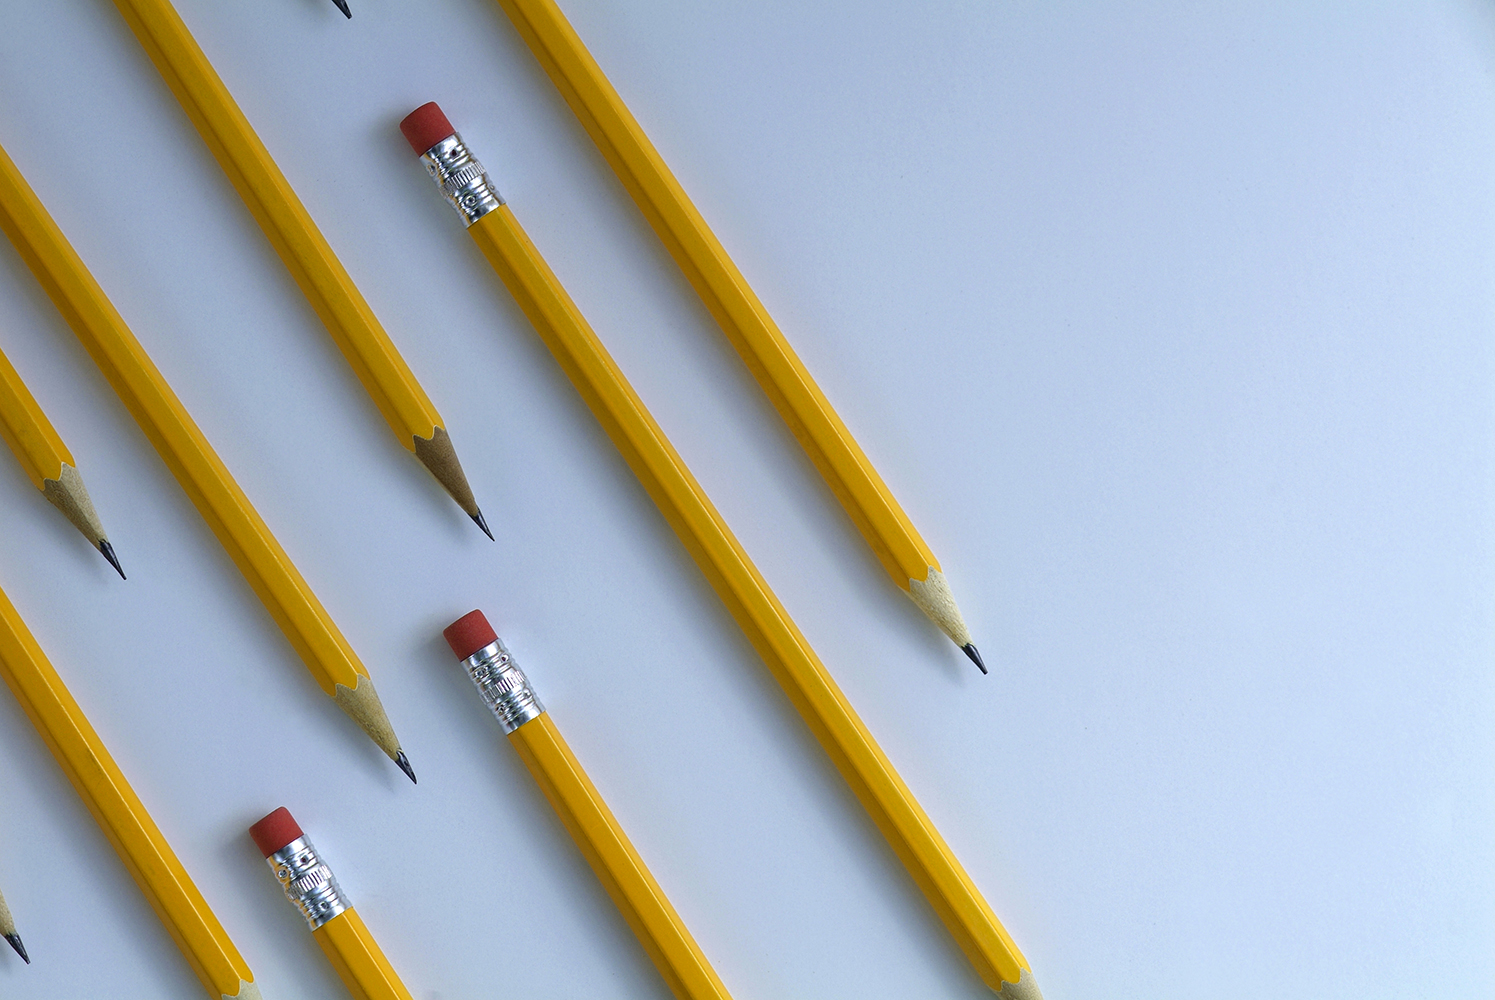 Several yellow pencils on diagonal and parallel to each other on white